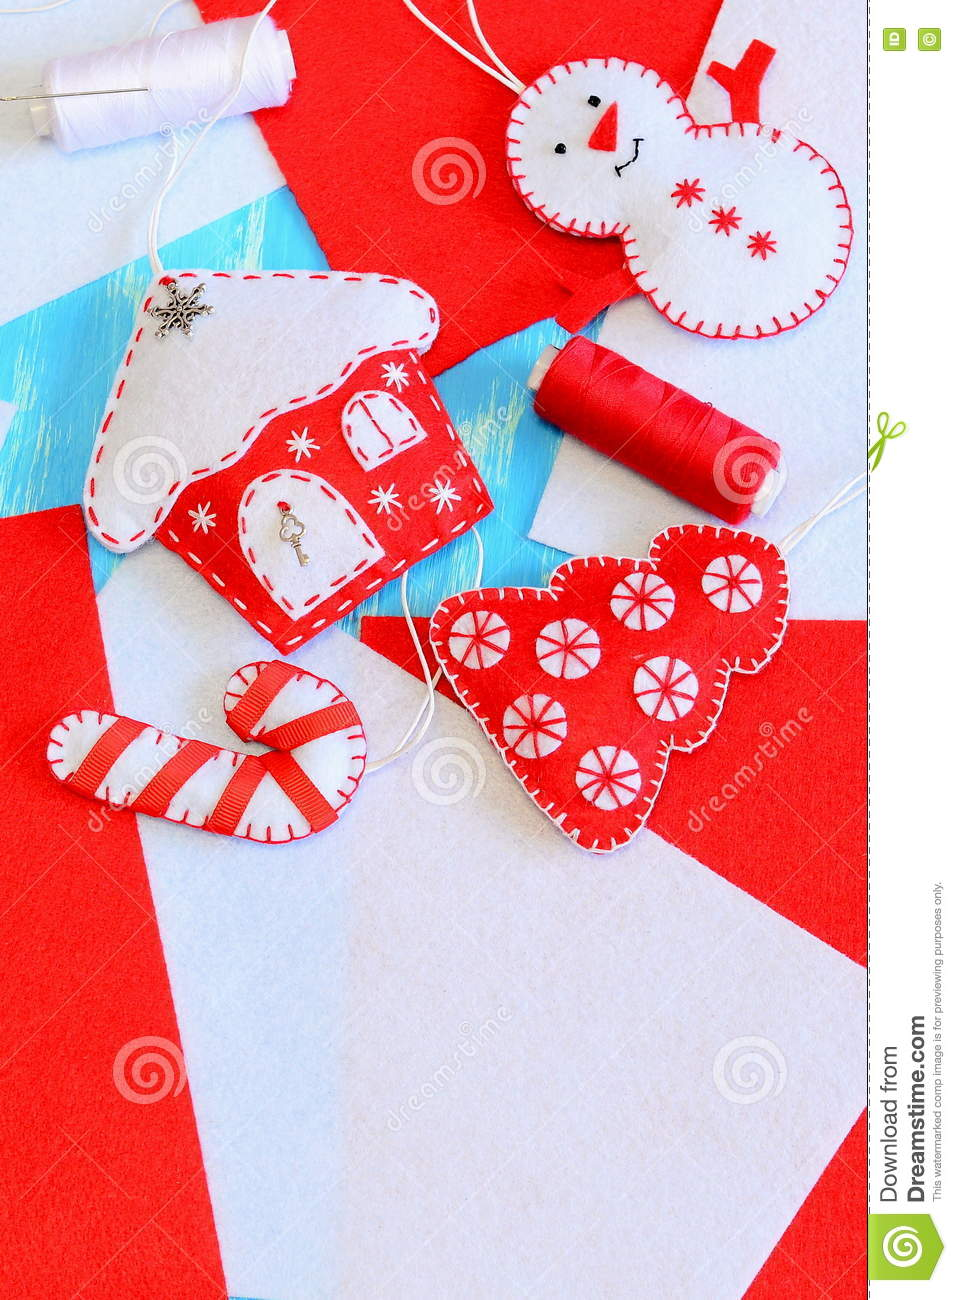 Felt House With Hearts Ornament, Tools And Materials For ...